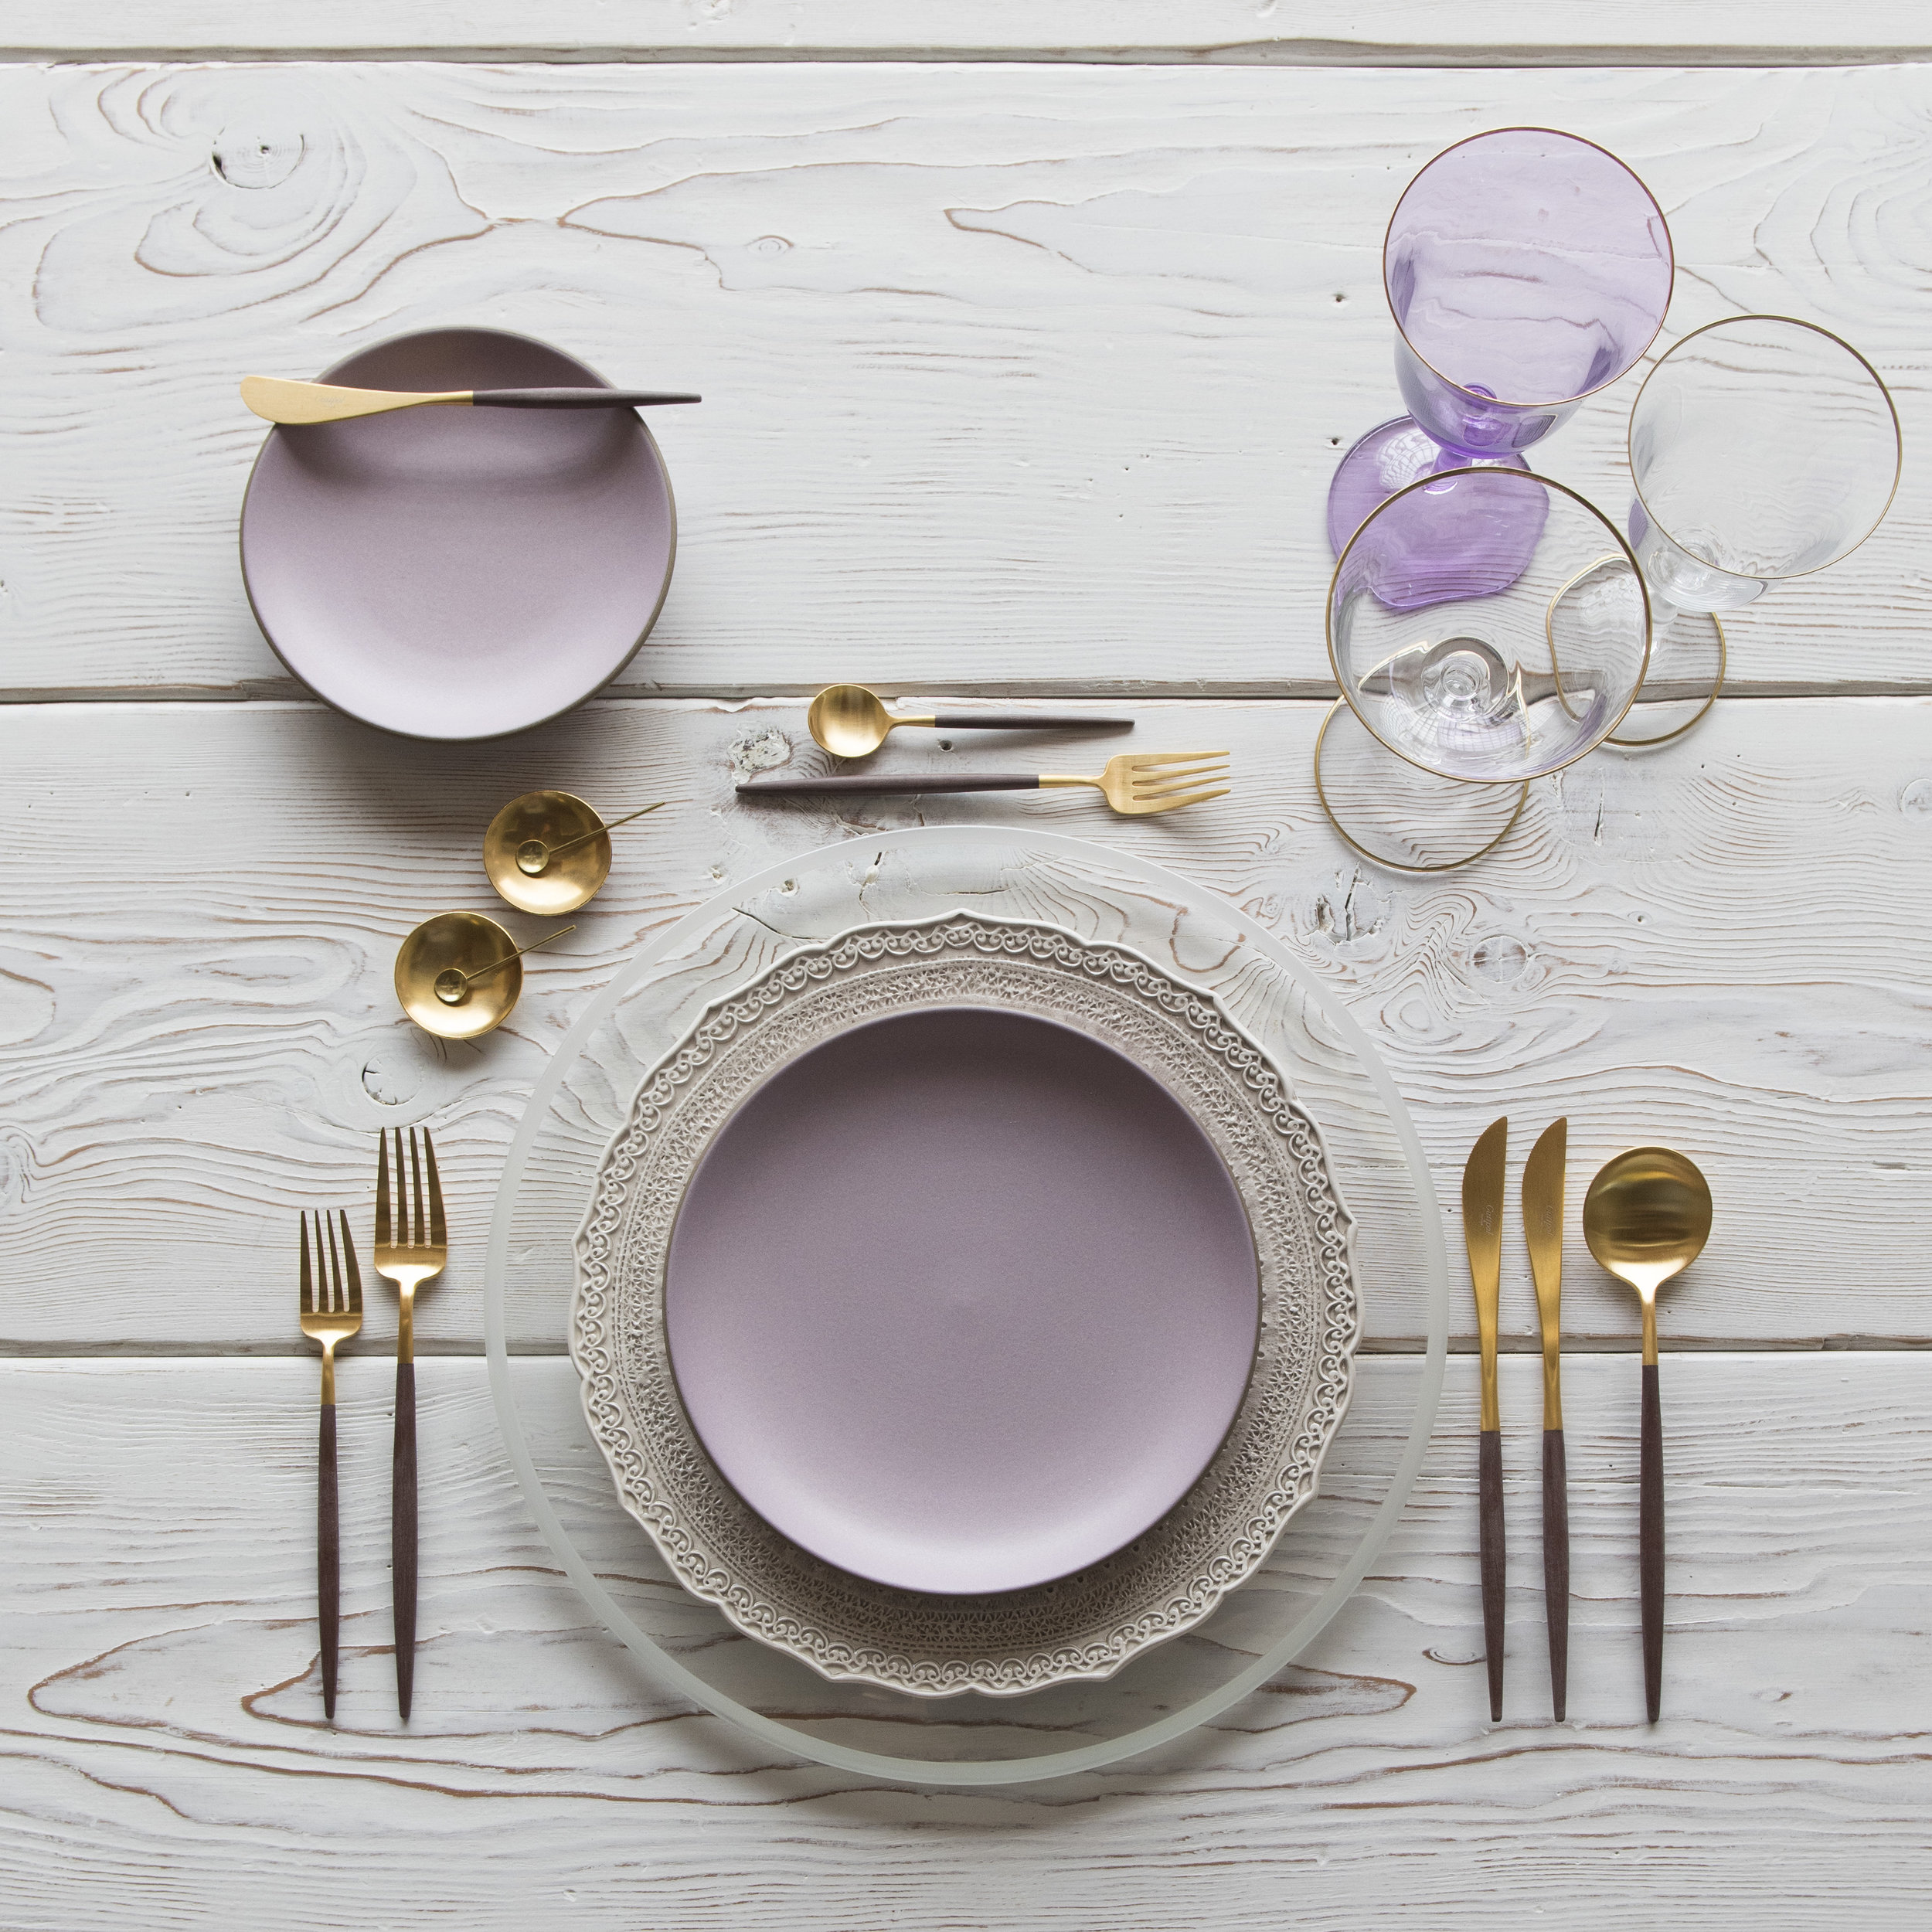 RENT: Halo Glass Chargers in Pearl + Lace Dinnerware in White + Custom Heath Ceramics in Wildflower + Goa Flatware in Brushed 24k Gold/Wood + Chloe 24k Gold Rimmed Stemware + Chloe 24k Gold Rimmed Goblet in Lilac + 14k Gold Salt Cellars + Tiny Gold Spoons  SHOP:Halo Glass Chargers in Pearl +Goa Flatware in Brushed 24k Gold/Wood + Chloe 24k Gold Rimmed Stemware + 14k Gold Salt Cellars + Tiny Gold Spoons